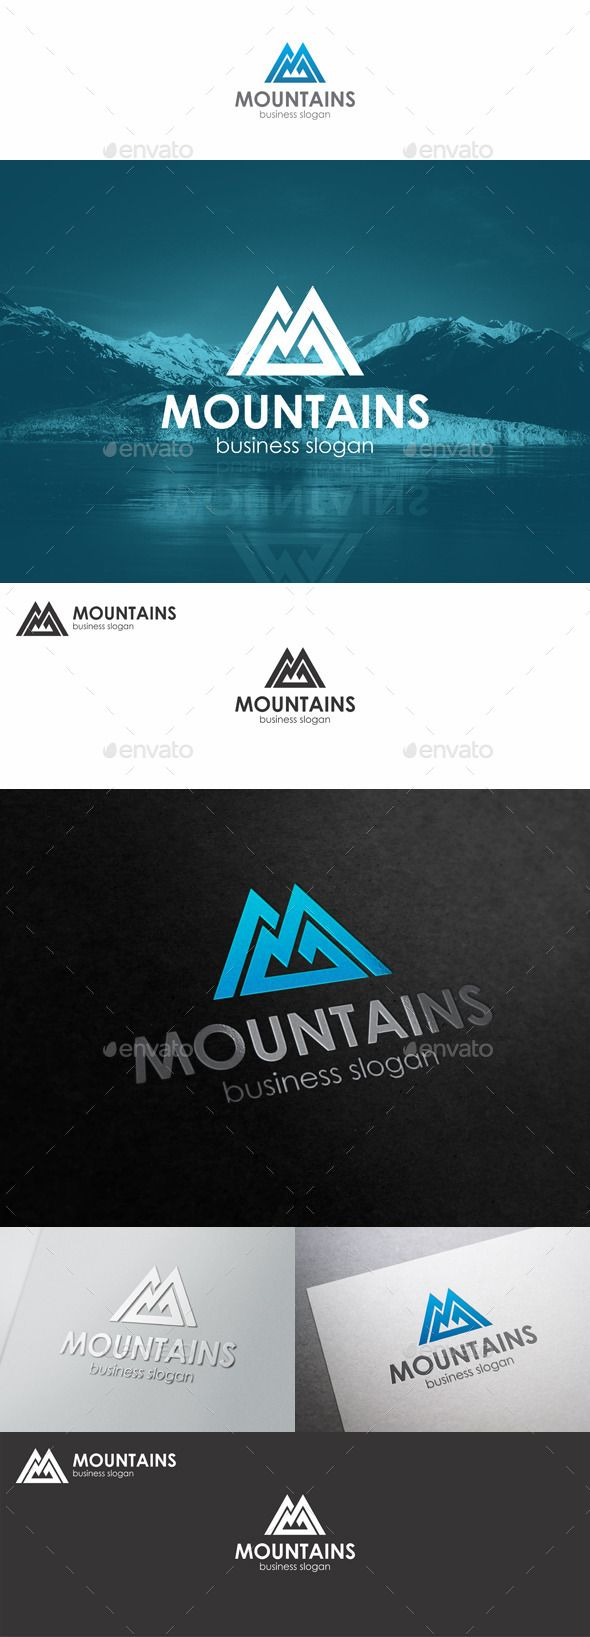 Mountains Monogram M Letter - Logo Design Template Vector #logotype Download it here: http://graphicriver.net/item/mountains-logo-monogram-m-letter/10311209?s_rank=1279?ref=nexion